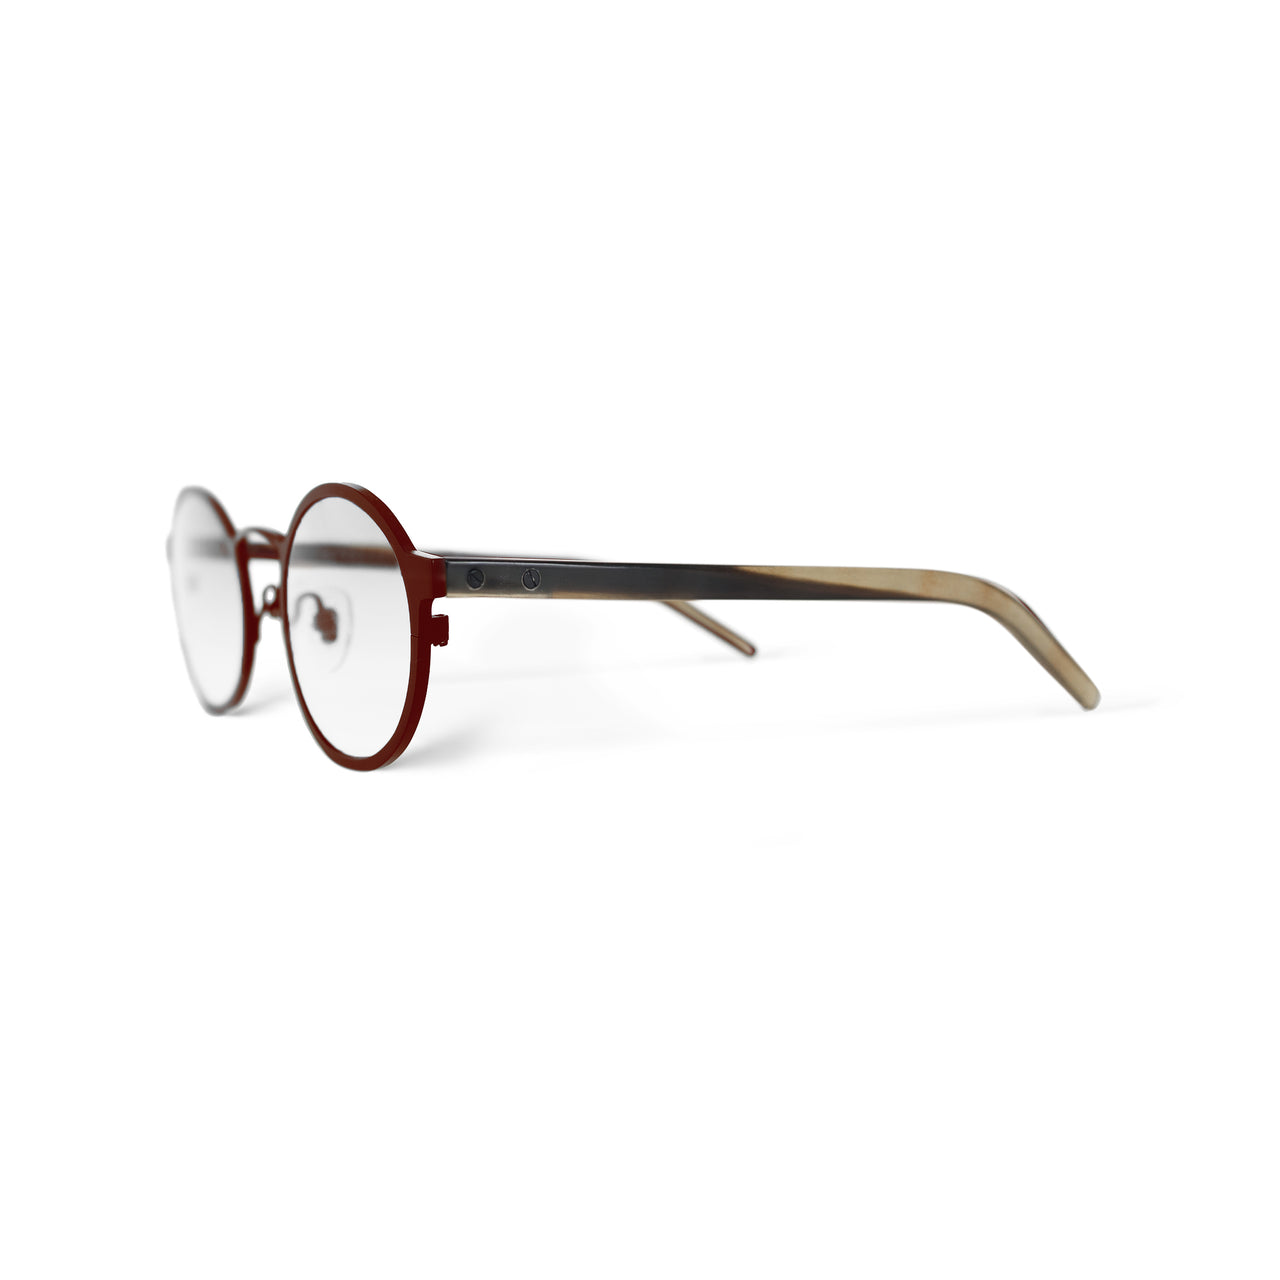 Metal / Horn. Crimson / Tortoise. Clear Lens. - BLYSZAK eyewear eyewear - eyewear, optical, sunglasses